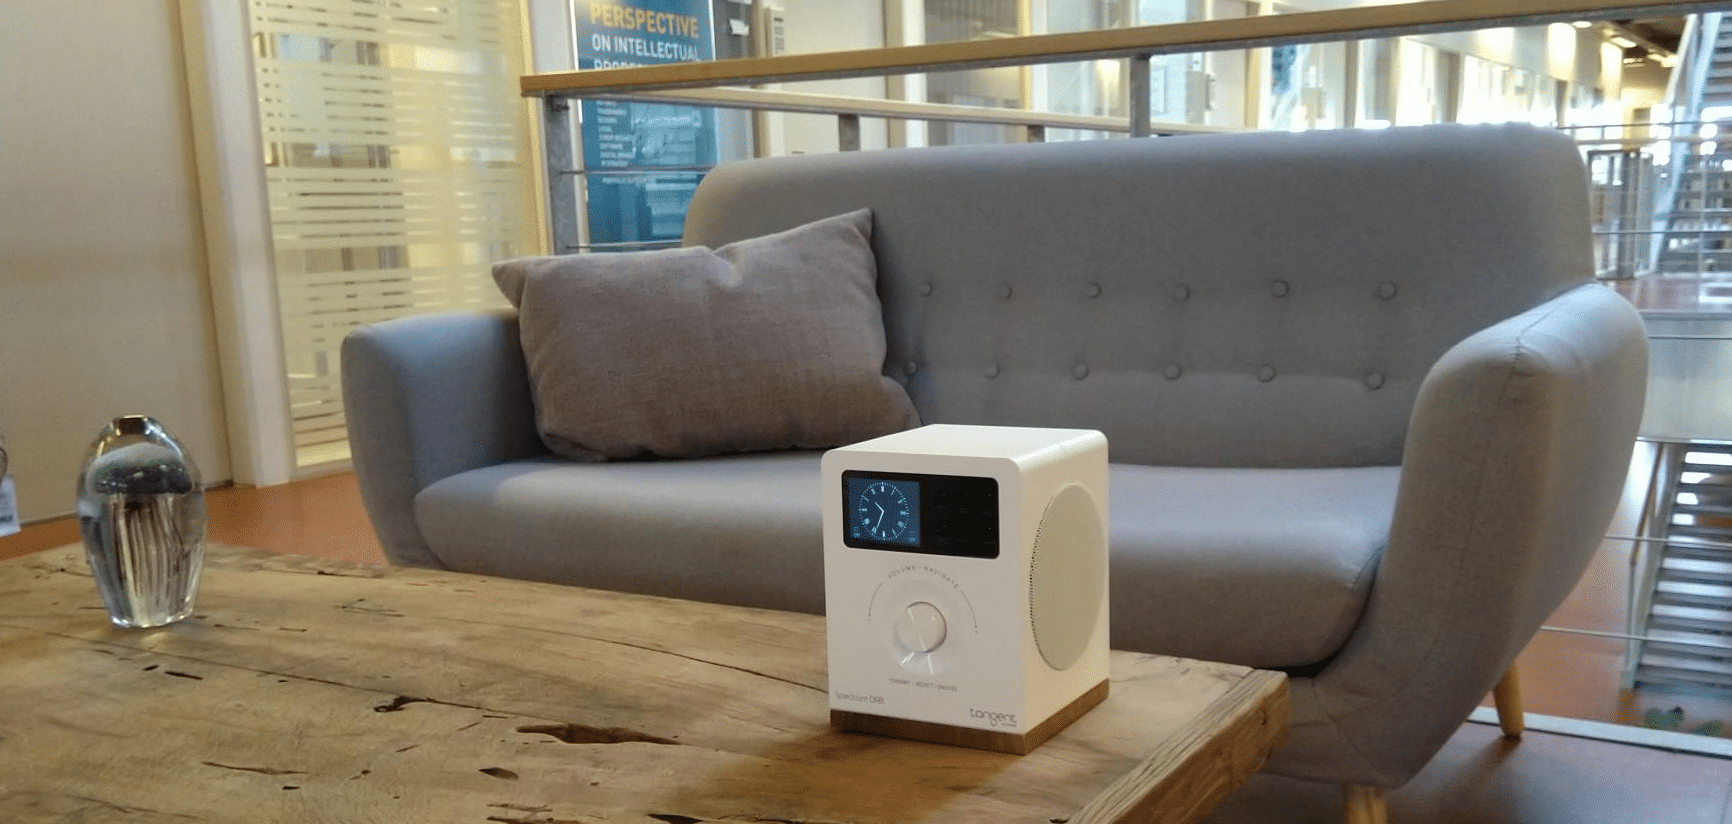 Spectrum DAB Radio and W1 multi-room speakers From Tangent